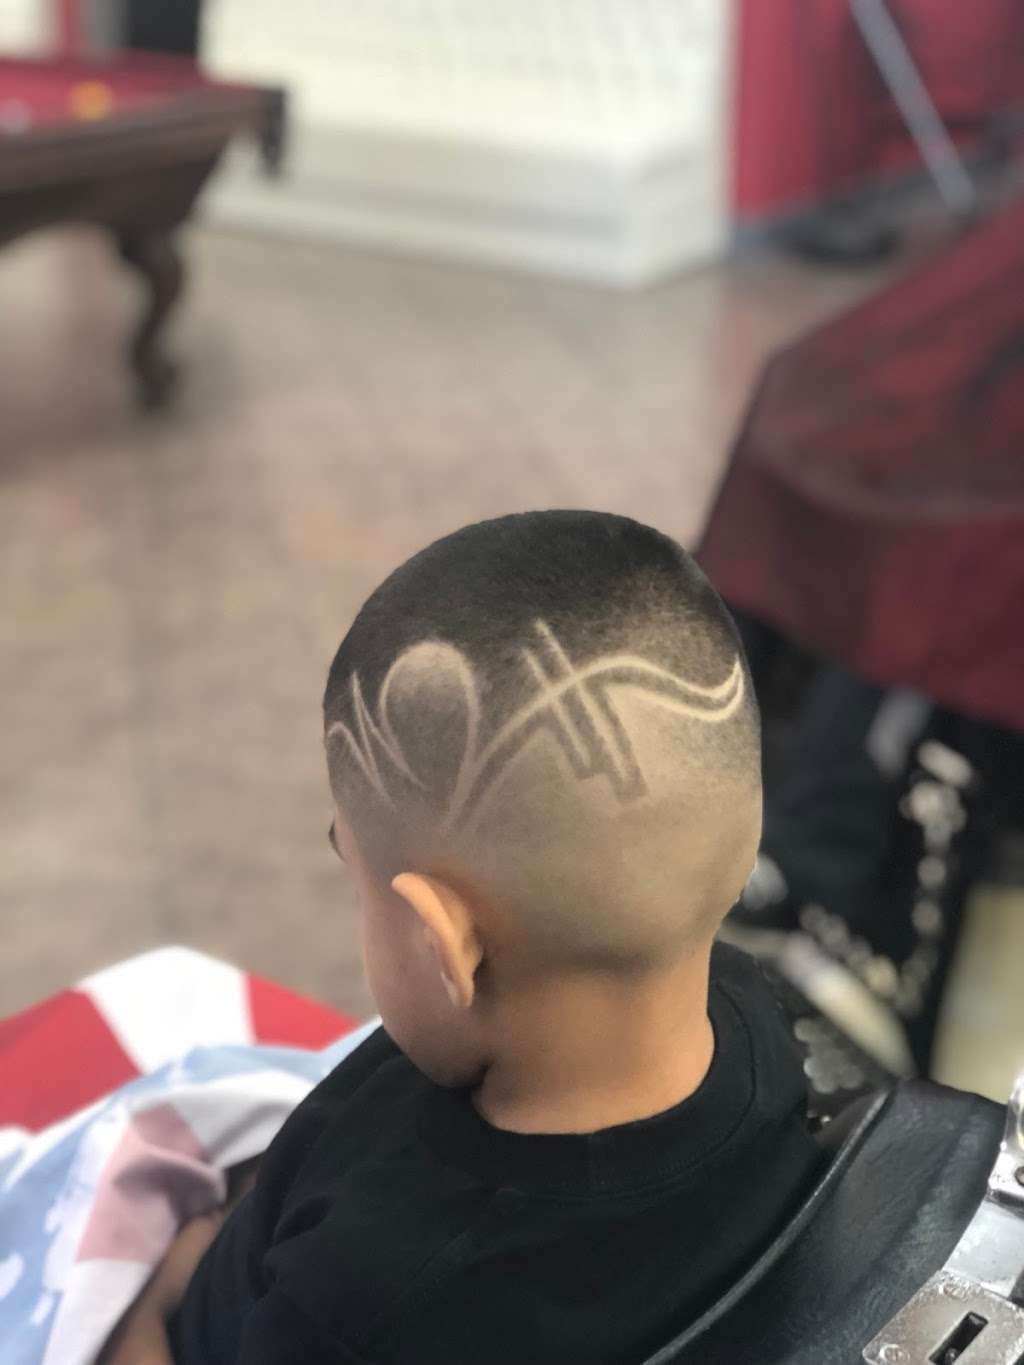 North Town Barber Shop - hair care  | Photo 3 of 5 | Address: 3012 E Griswold St Ste#4, North Las Vegas, NV 89030, USA | Phone: (702) 382-1160